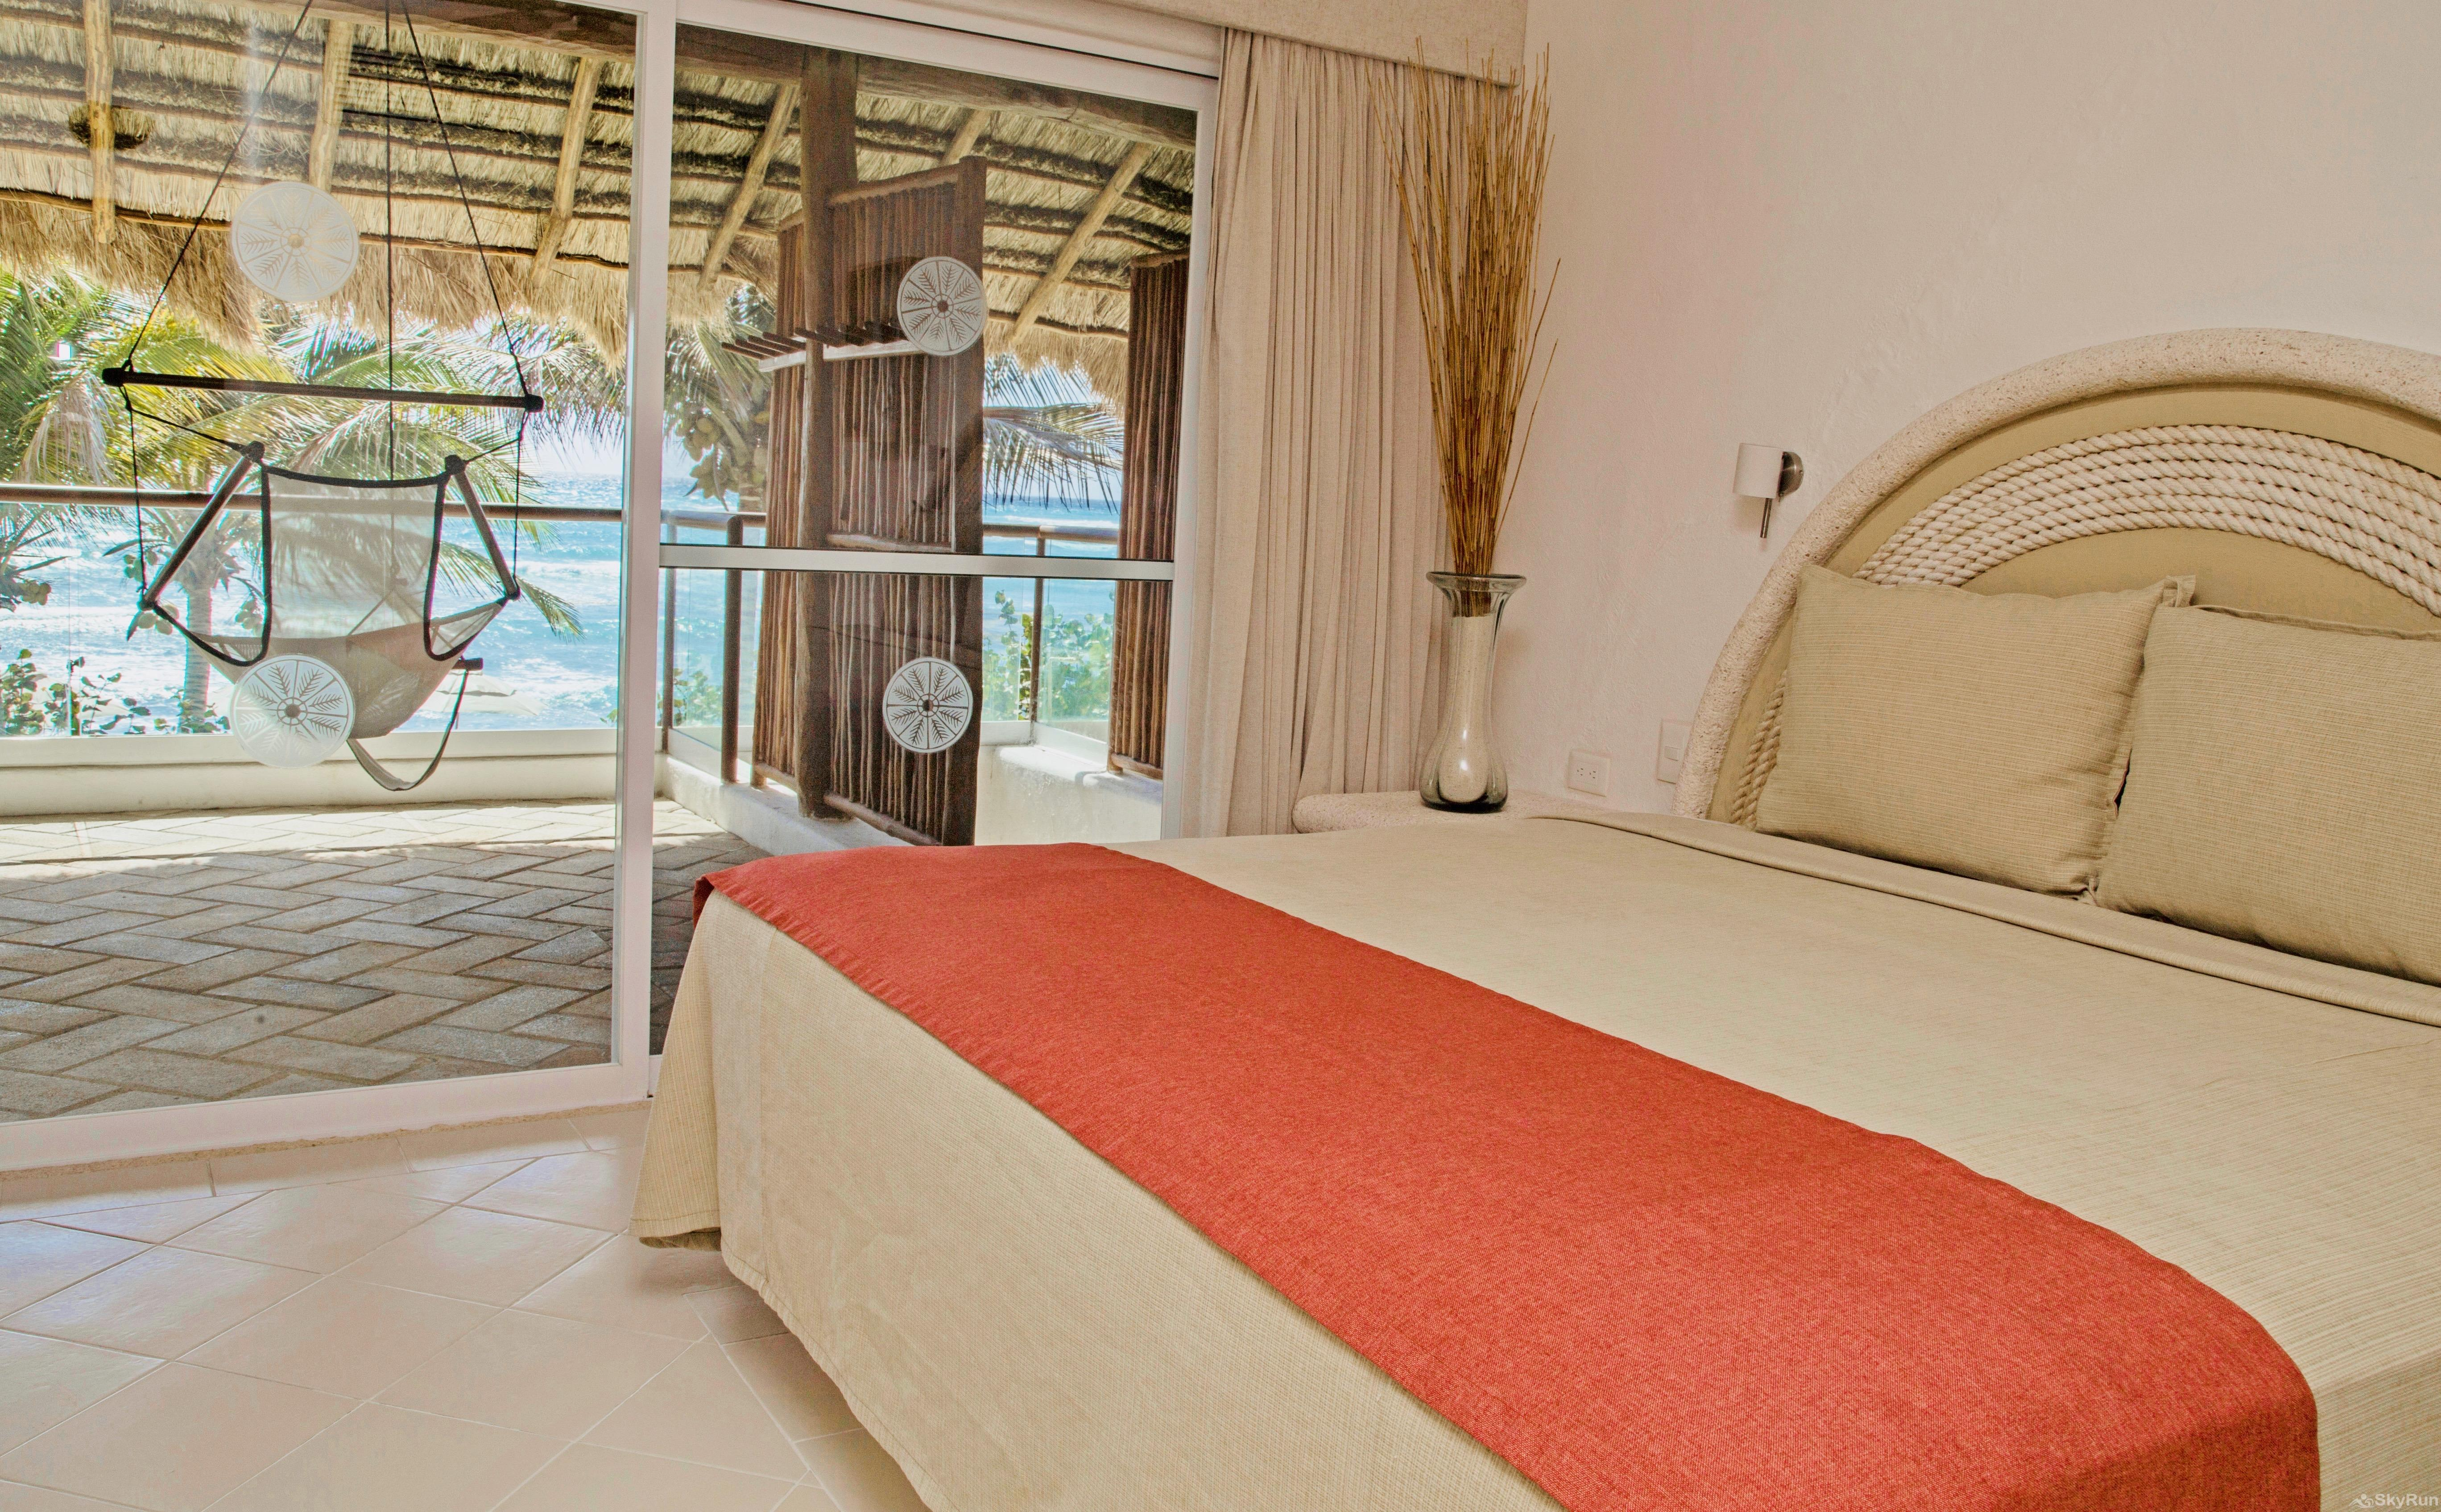 Beachfront  Villa 3 bedroom Tulum area Resort Style Master Bedroom